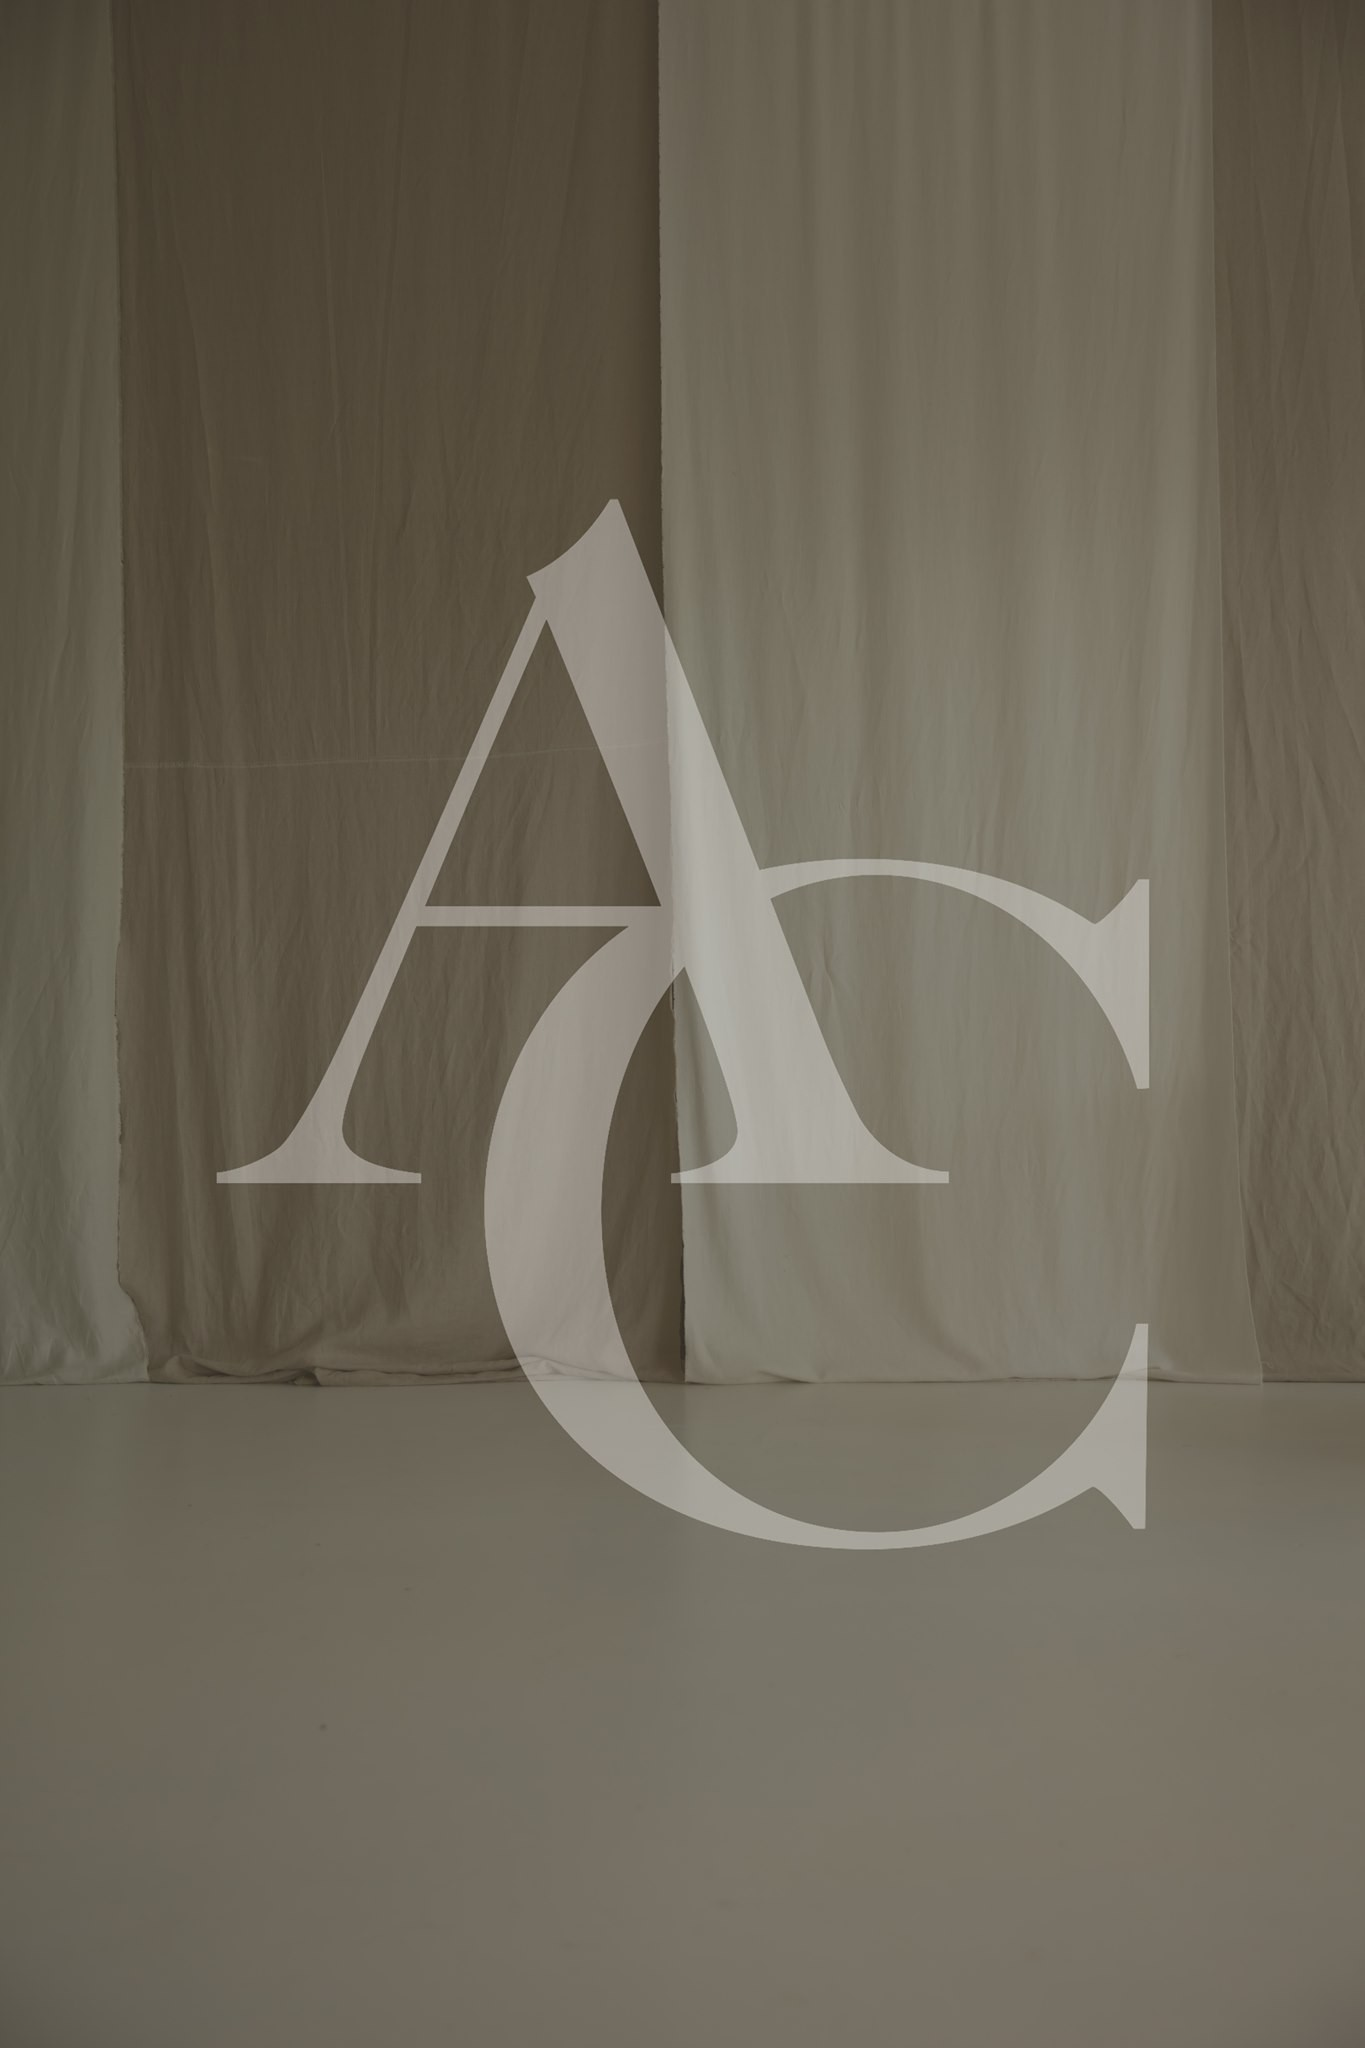 AC by Annelien Coorevits